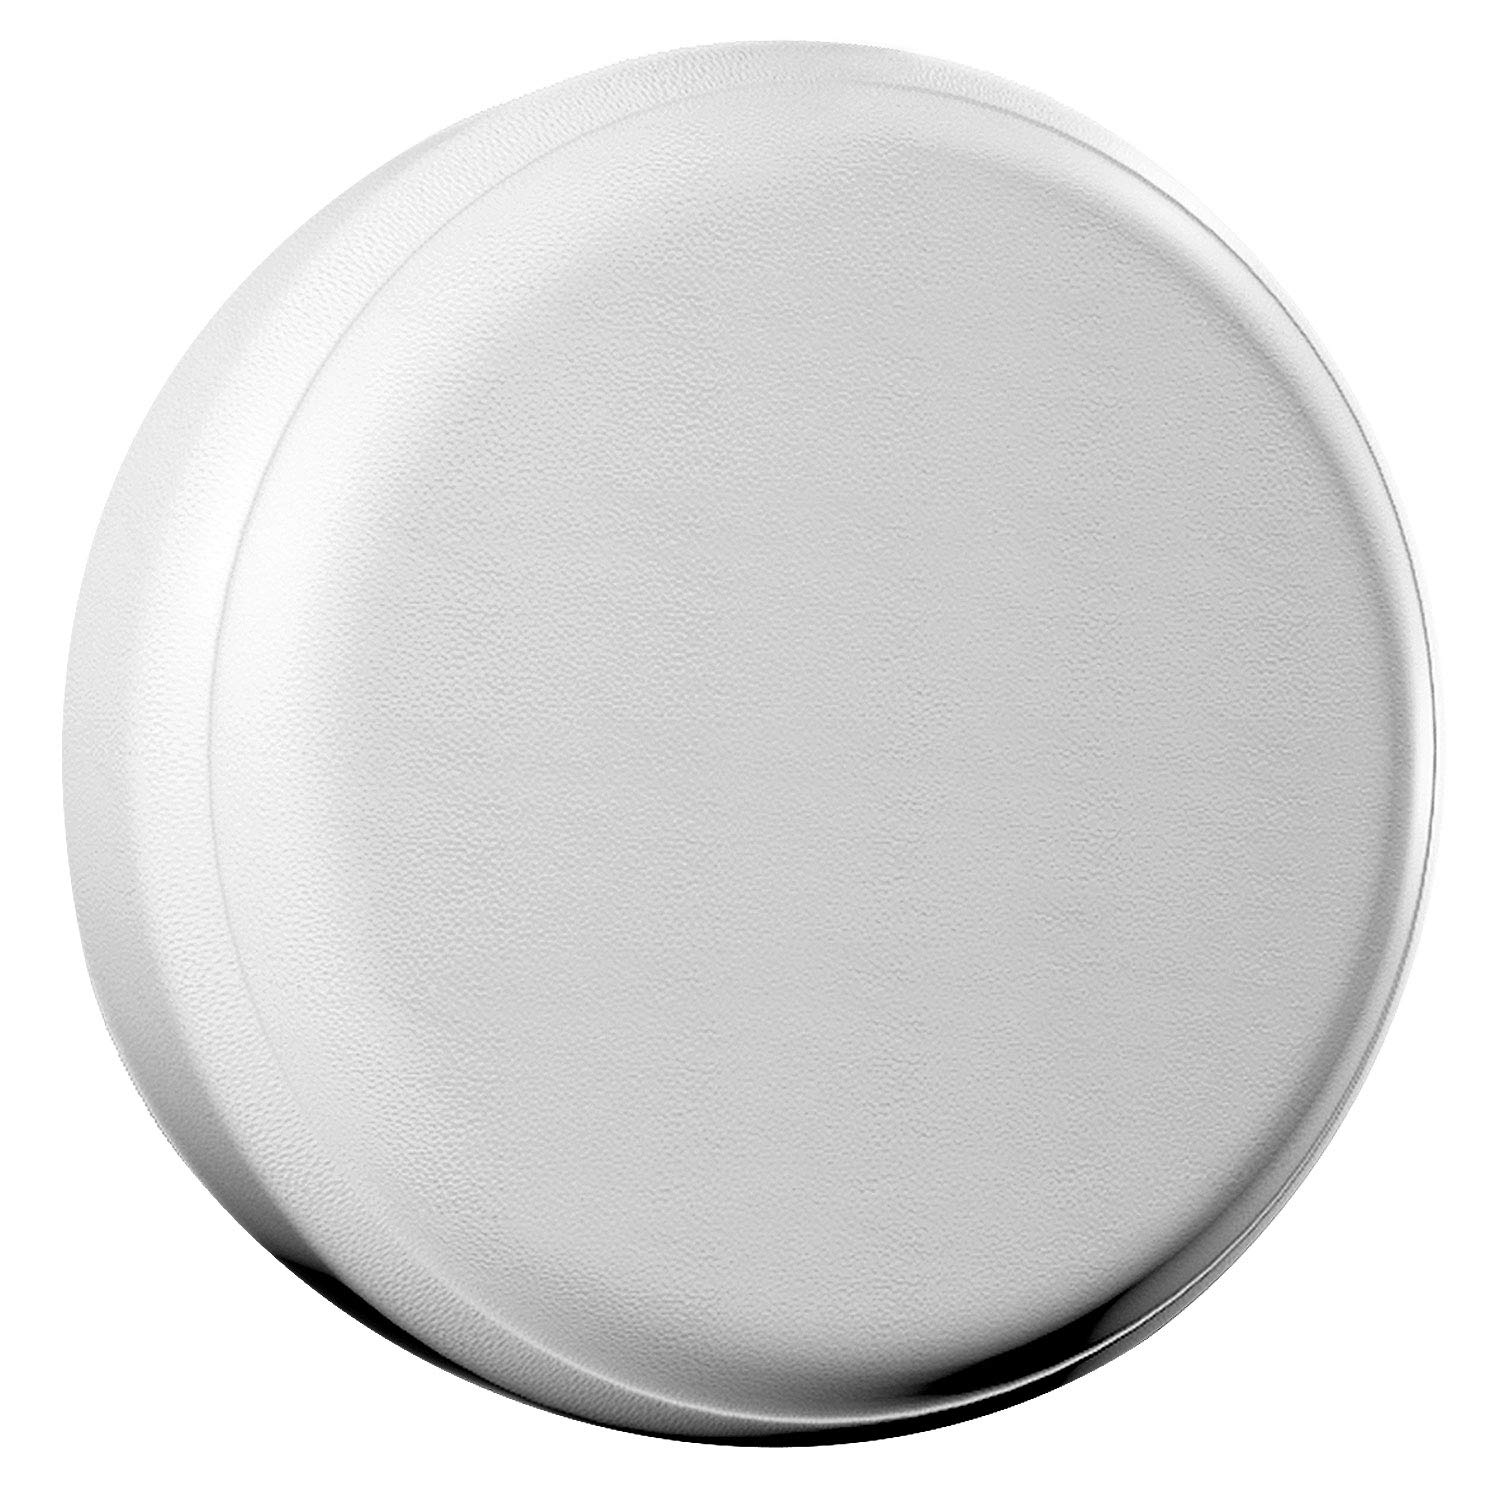 Amfor Spare Tire Cover, Universal Fit for Jeep, Trailer, RV, SUV, Truck and Many Vehicle, Wheel diameter 25'' - 27'', Weatherproof Tire Protectors (White)